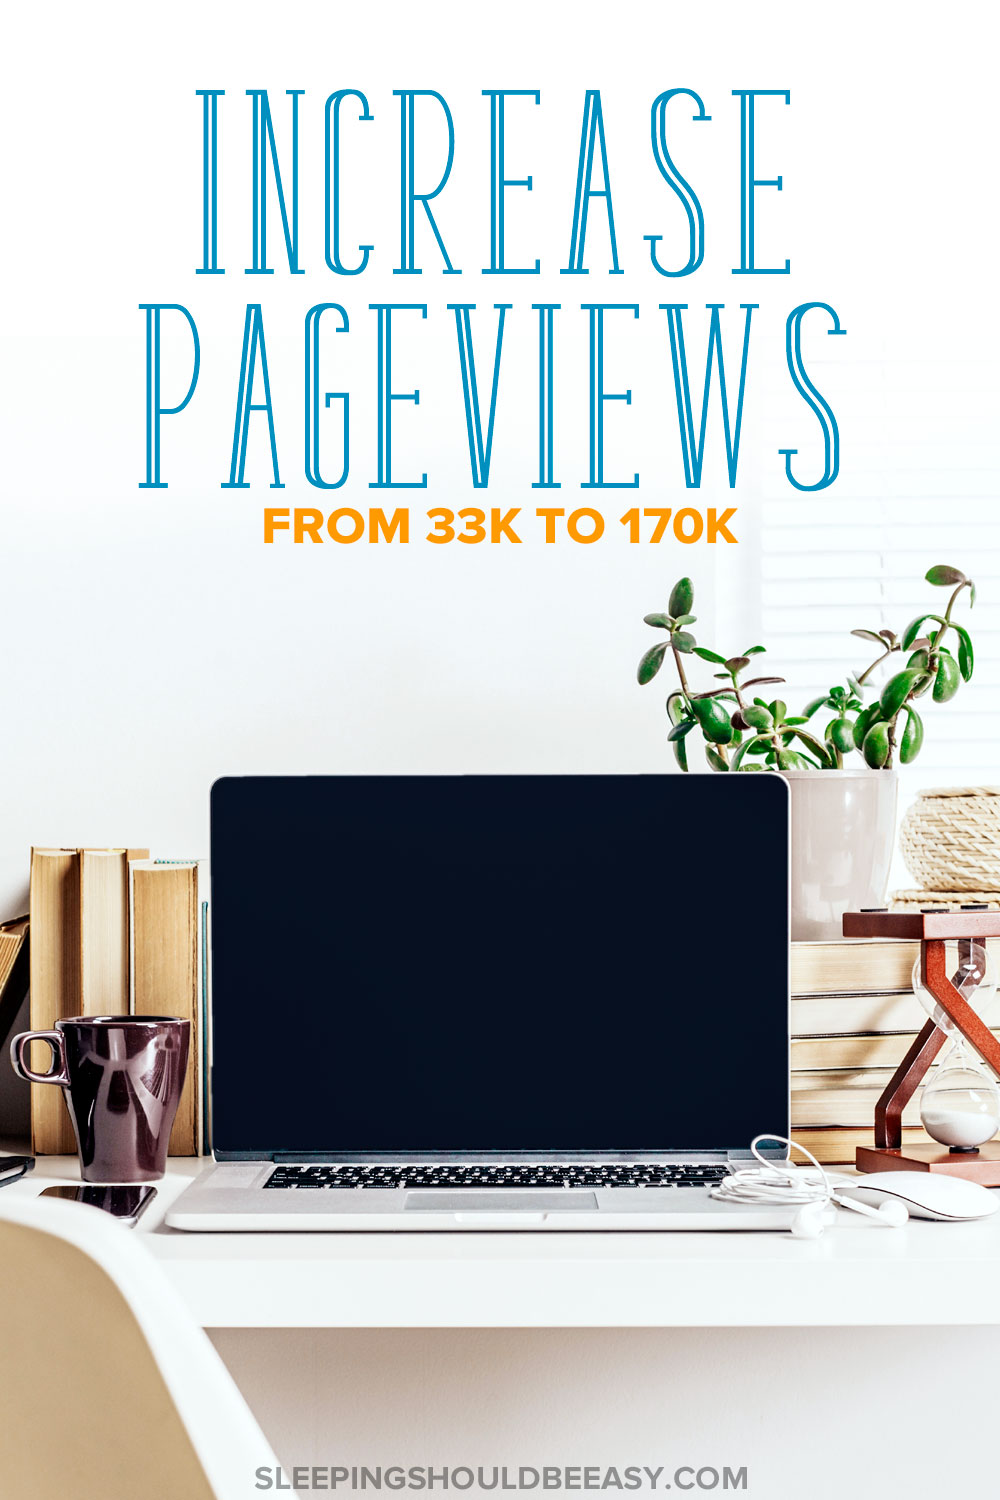 Learn about the course I took that increased pageviews for my blog from 30,000 a month to over 170,000 in less than a year.